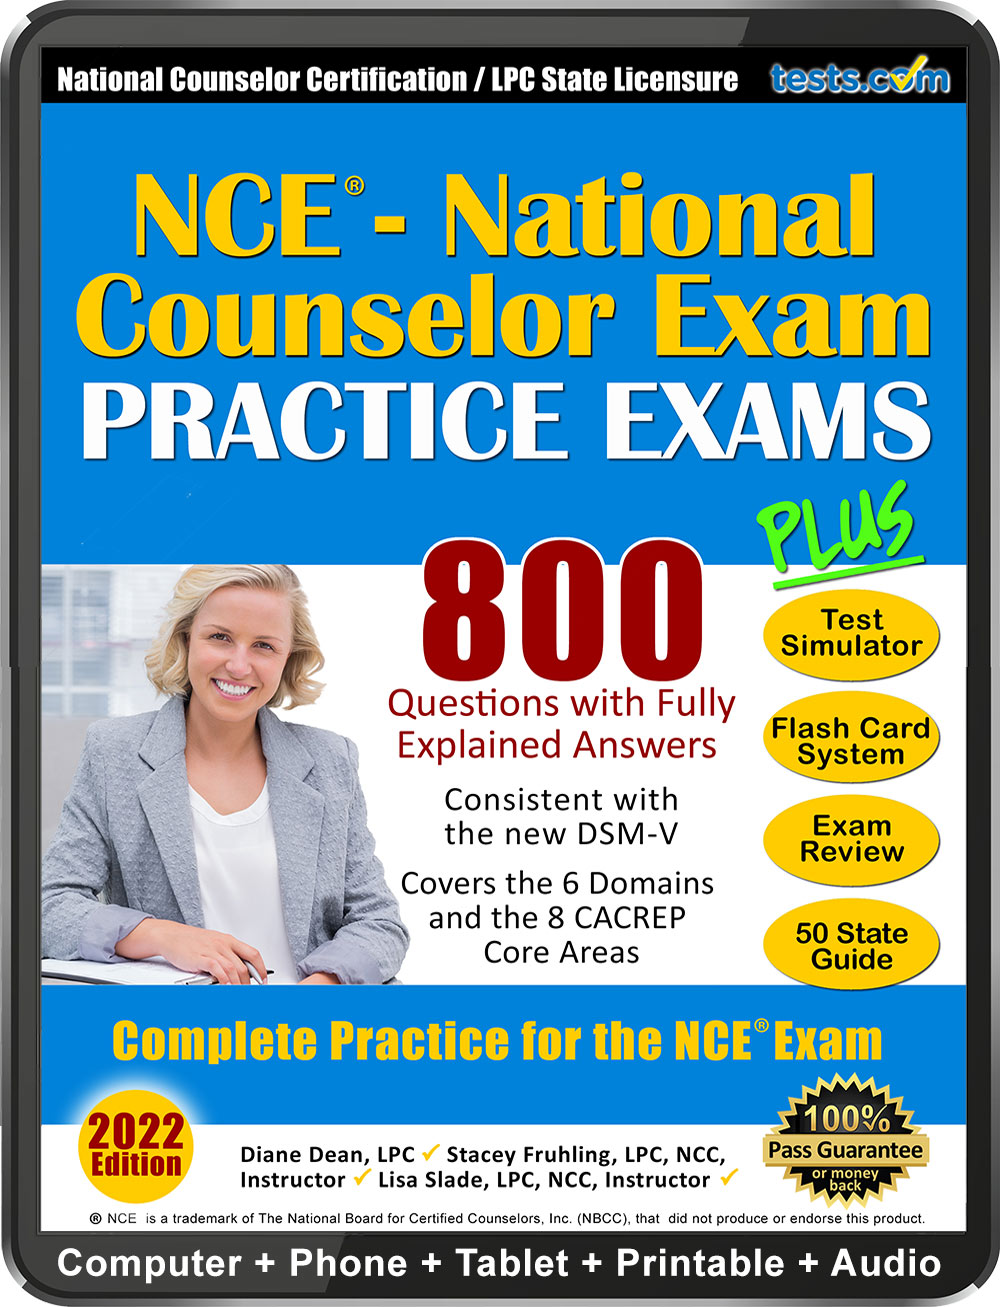 nce practice test national counselor exam practice questions nce practice exam national counselor practice exam